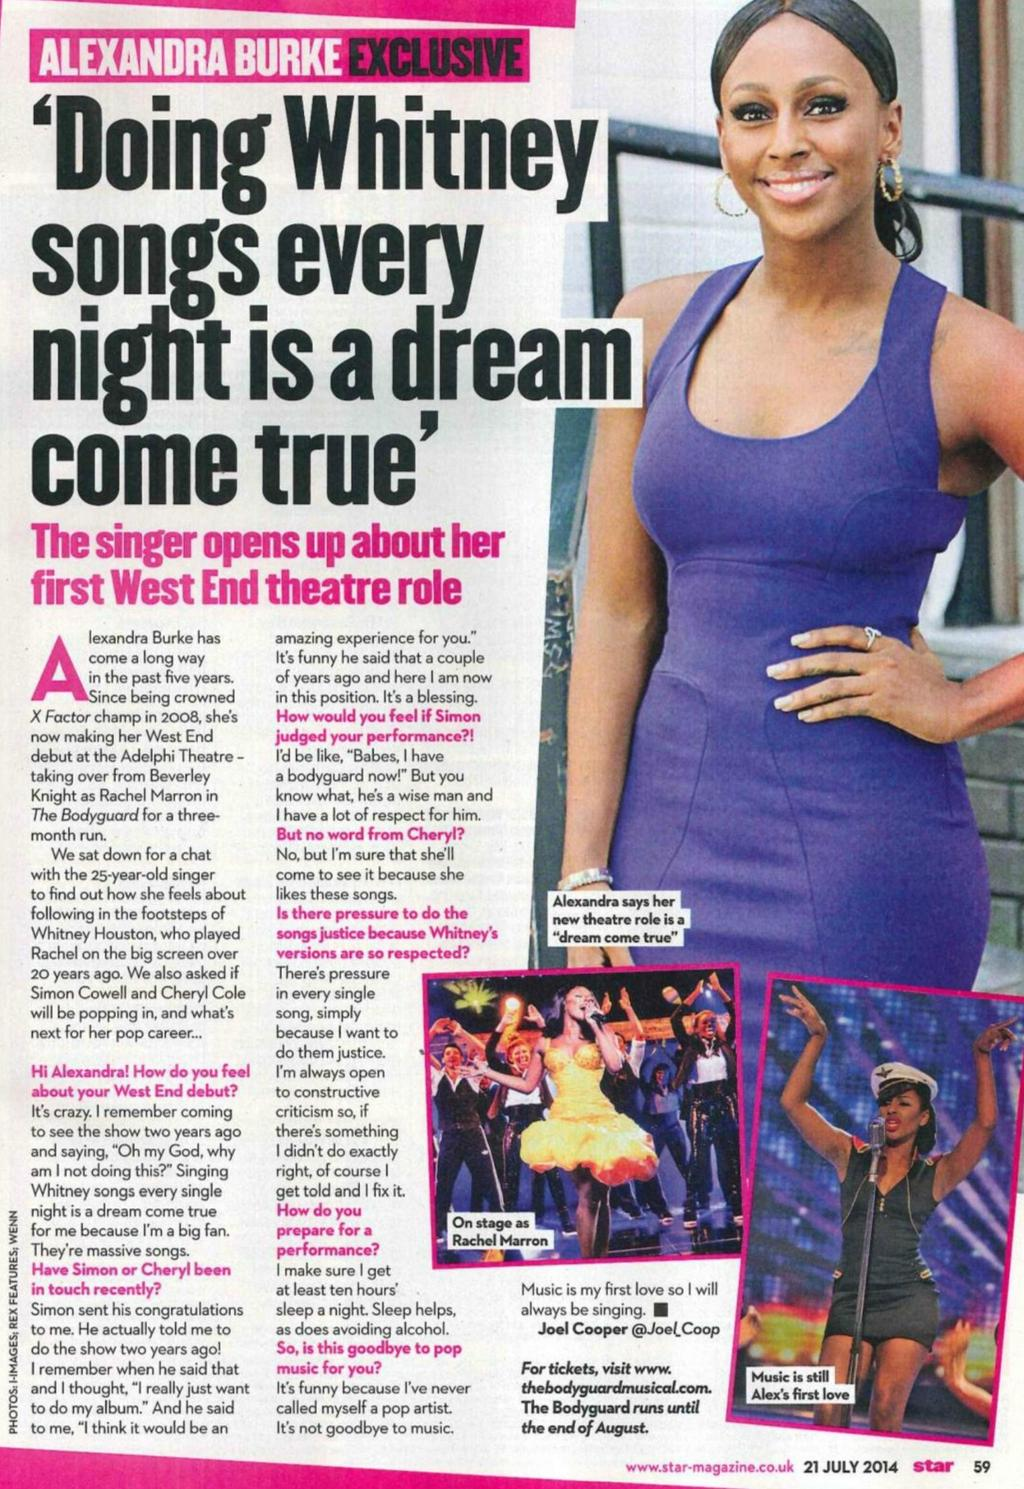 "RT @TheBodyguardUK: ""Doing Whitney songs every night is a dream come true"" - @alexandramusic in @star_magazine. #TheBodyguardMusical RT: ht…"